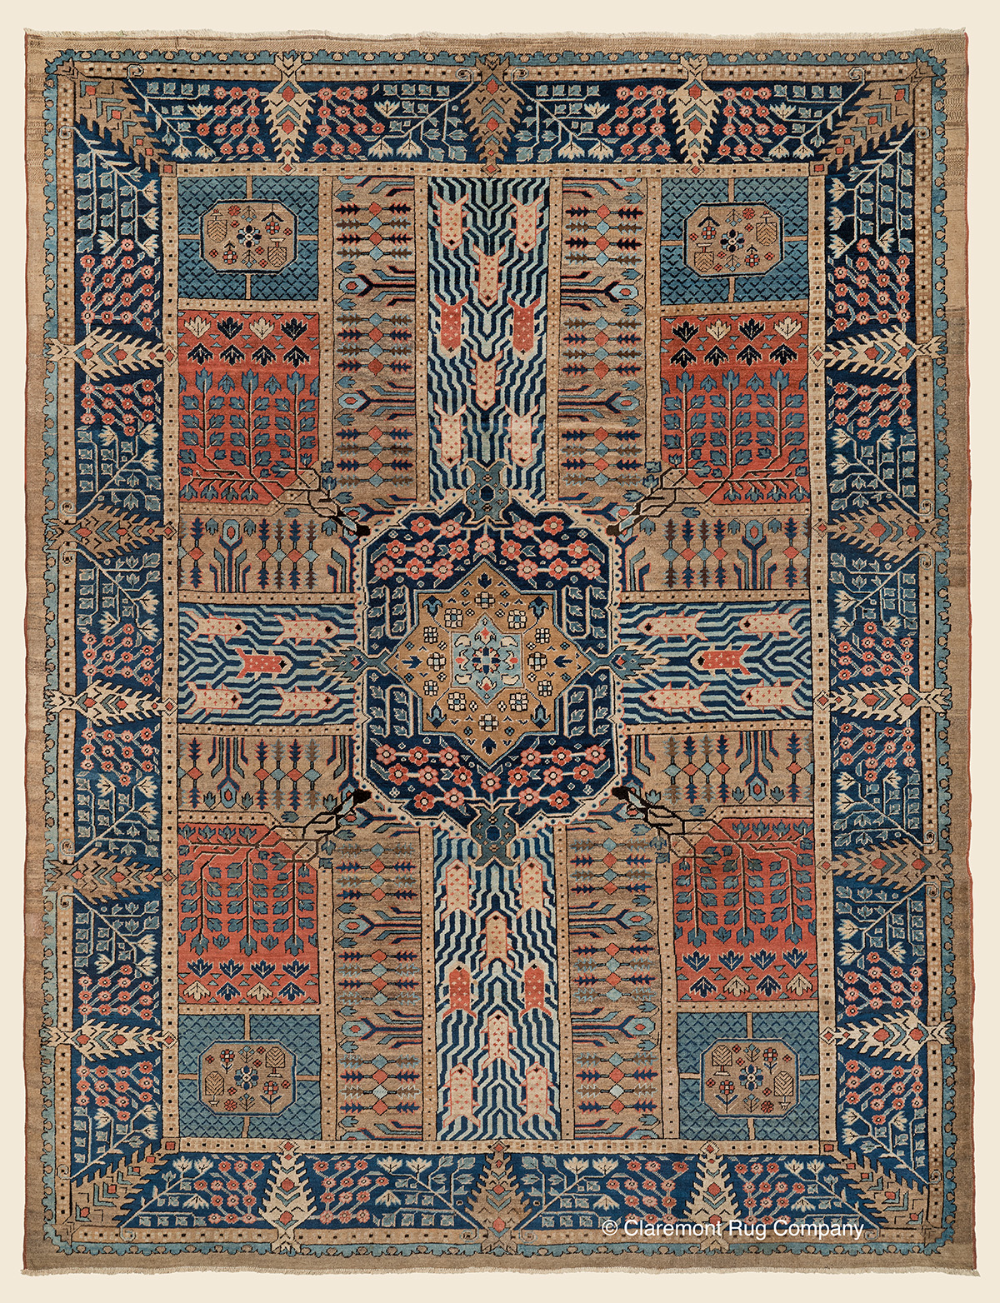 Sold Antique 19th Century Persian Bakshaish Garden Carpet Folk Art Collectible Geometric Room Size Antique Rug 8 In 2020 Claremont Rug Company Antique Rugs Rugs